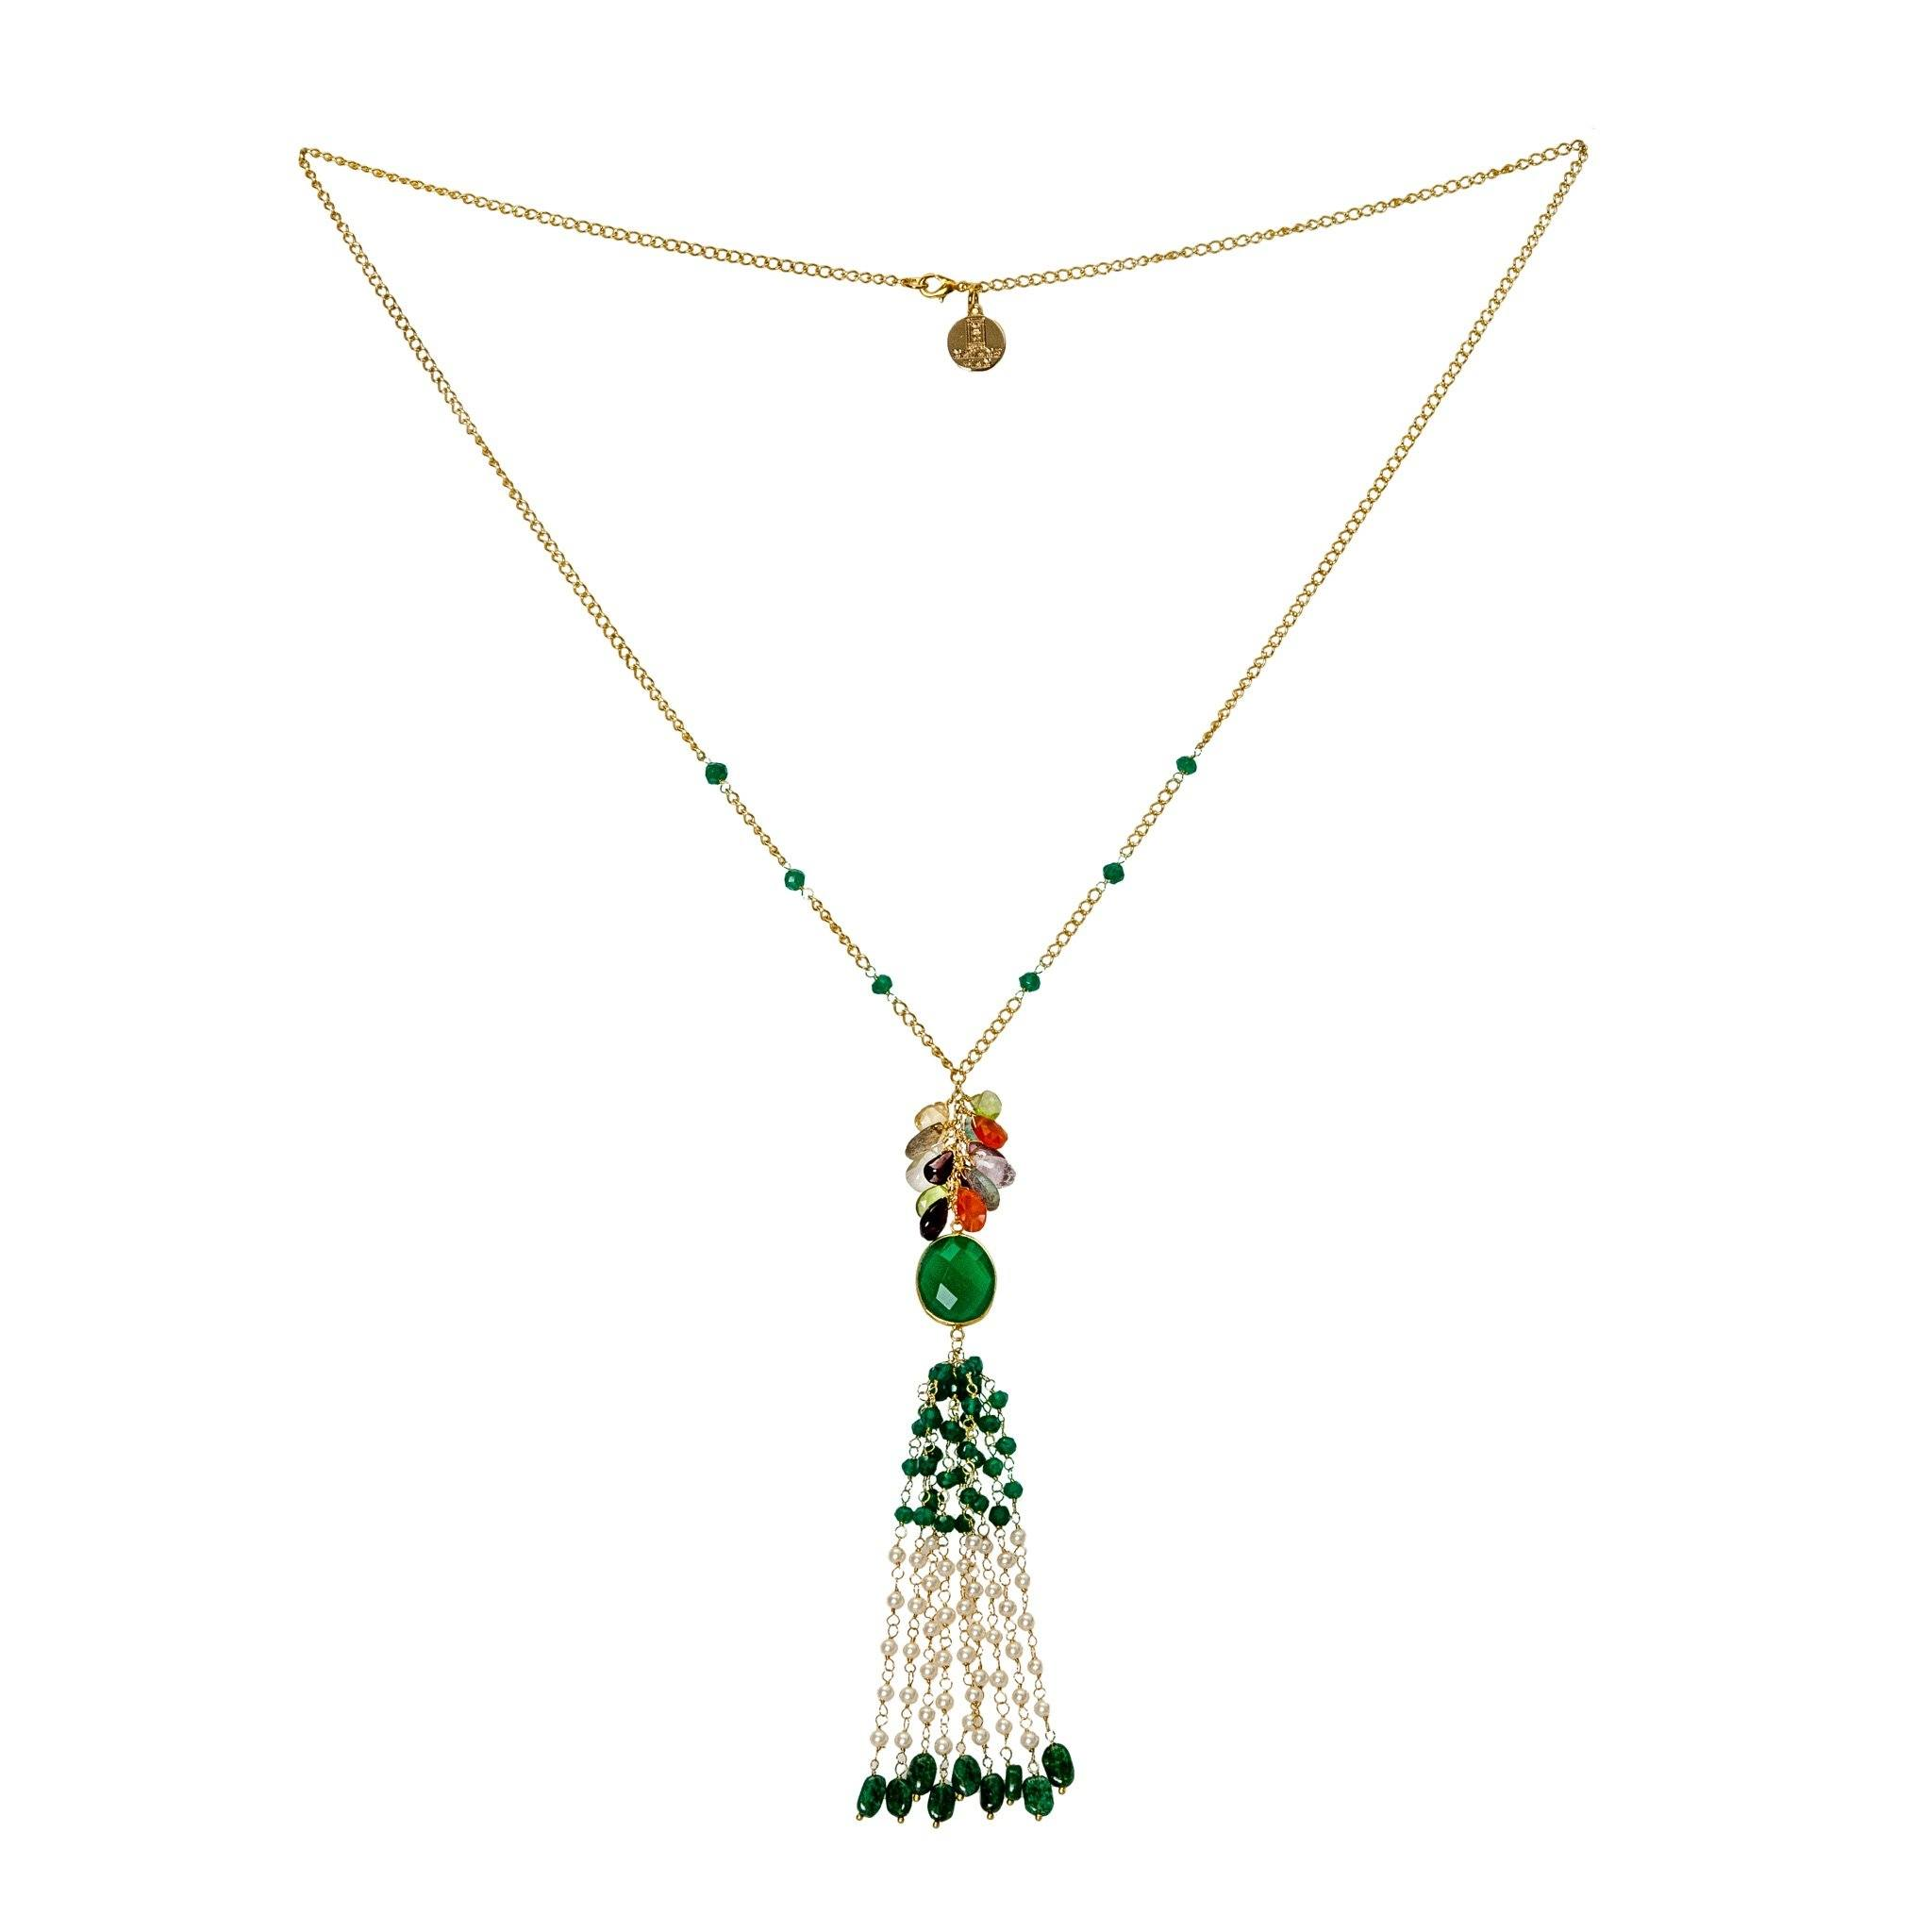 MAY green onyx tassel necklace - MadamSiam